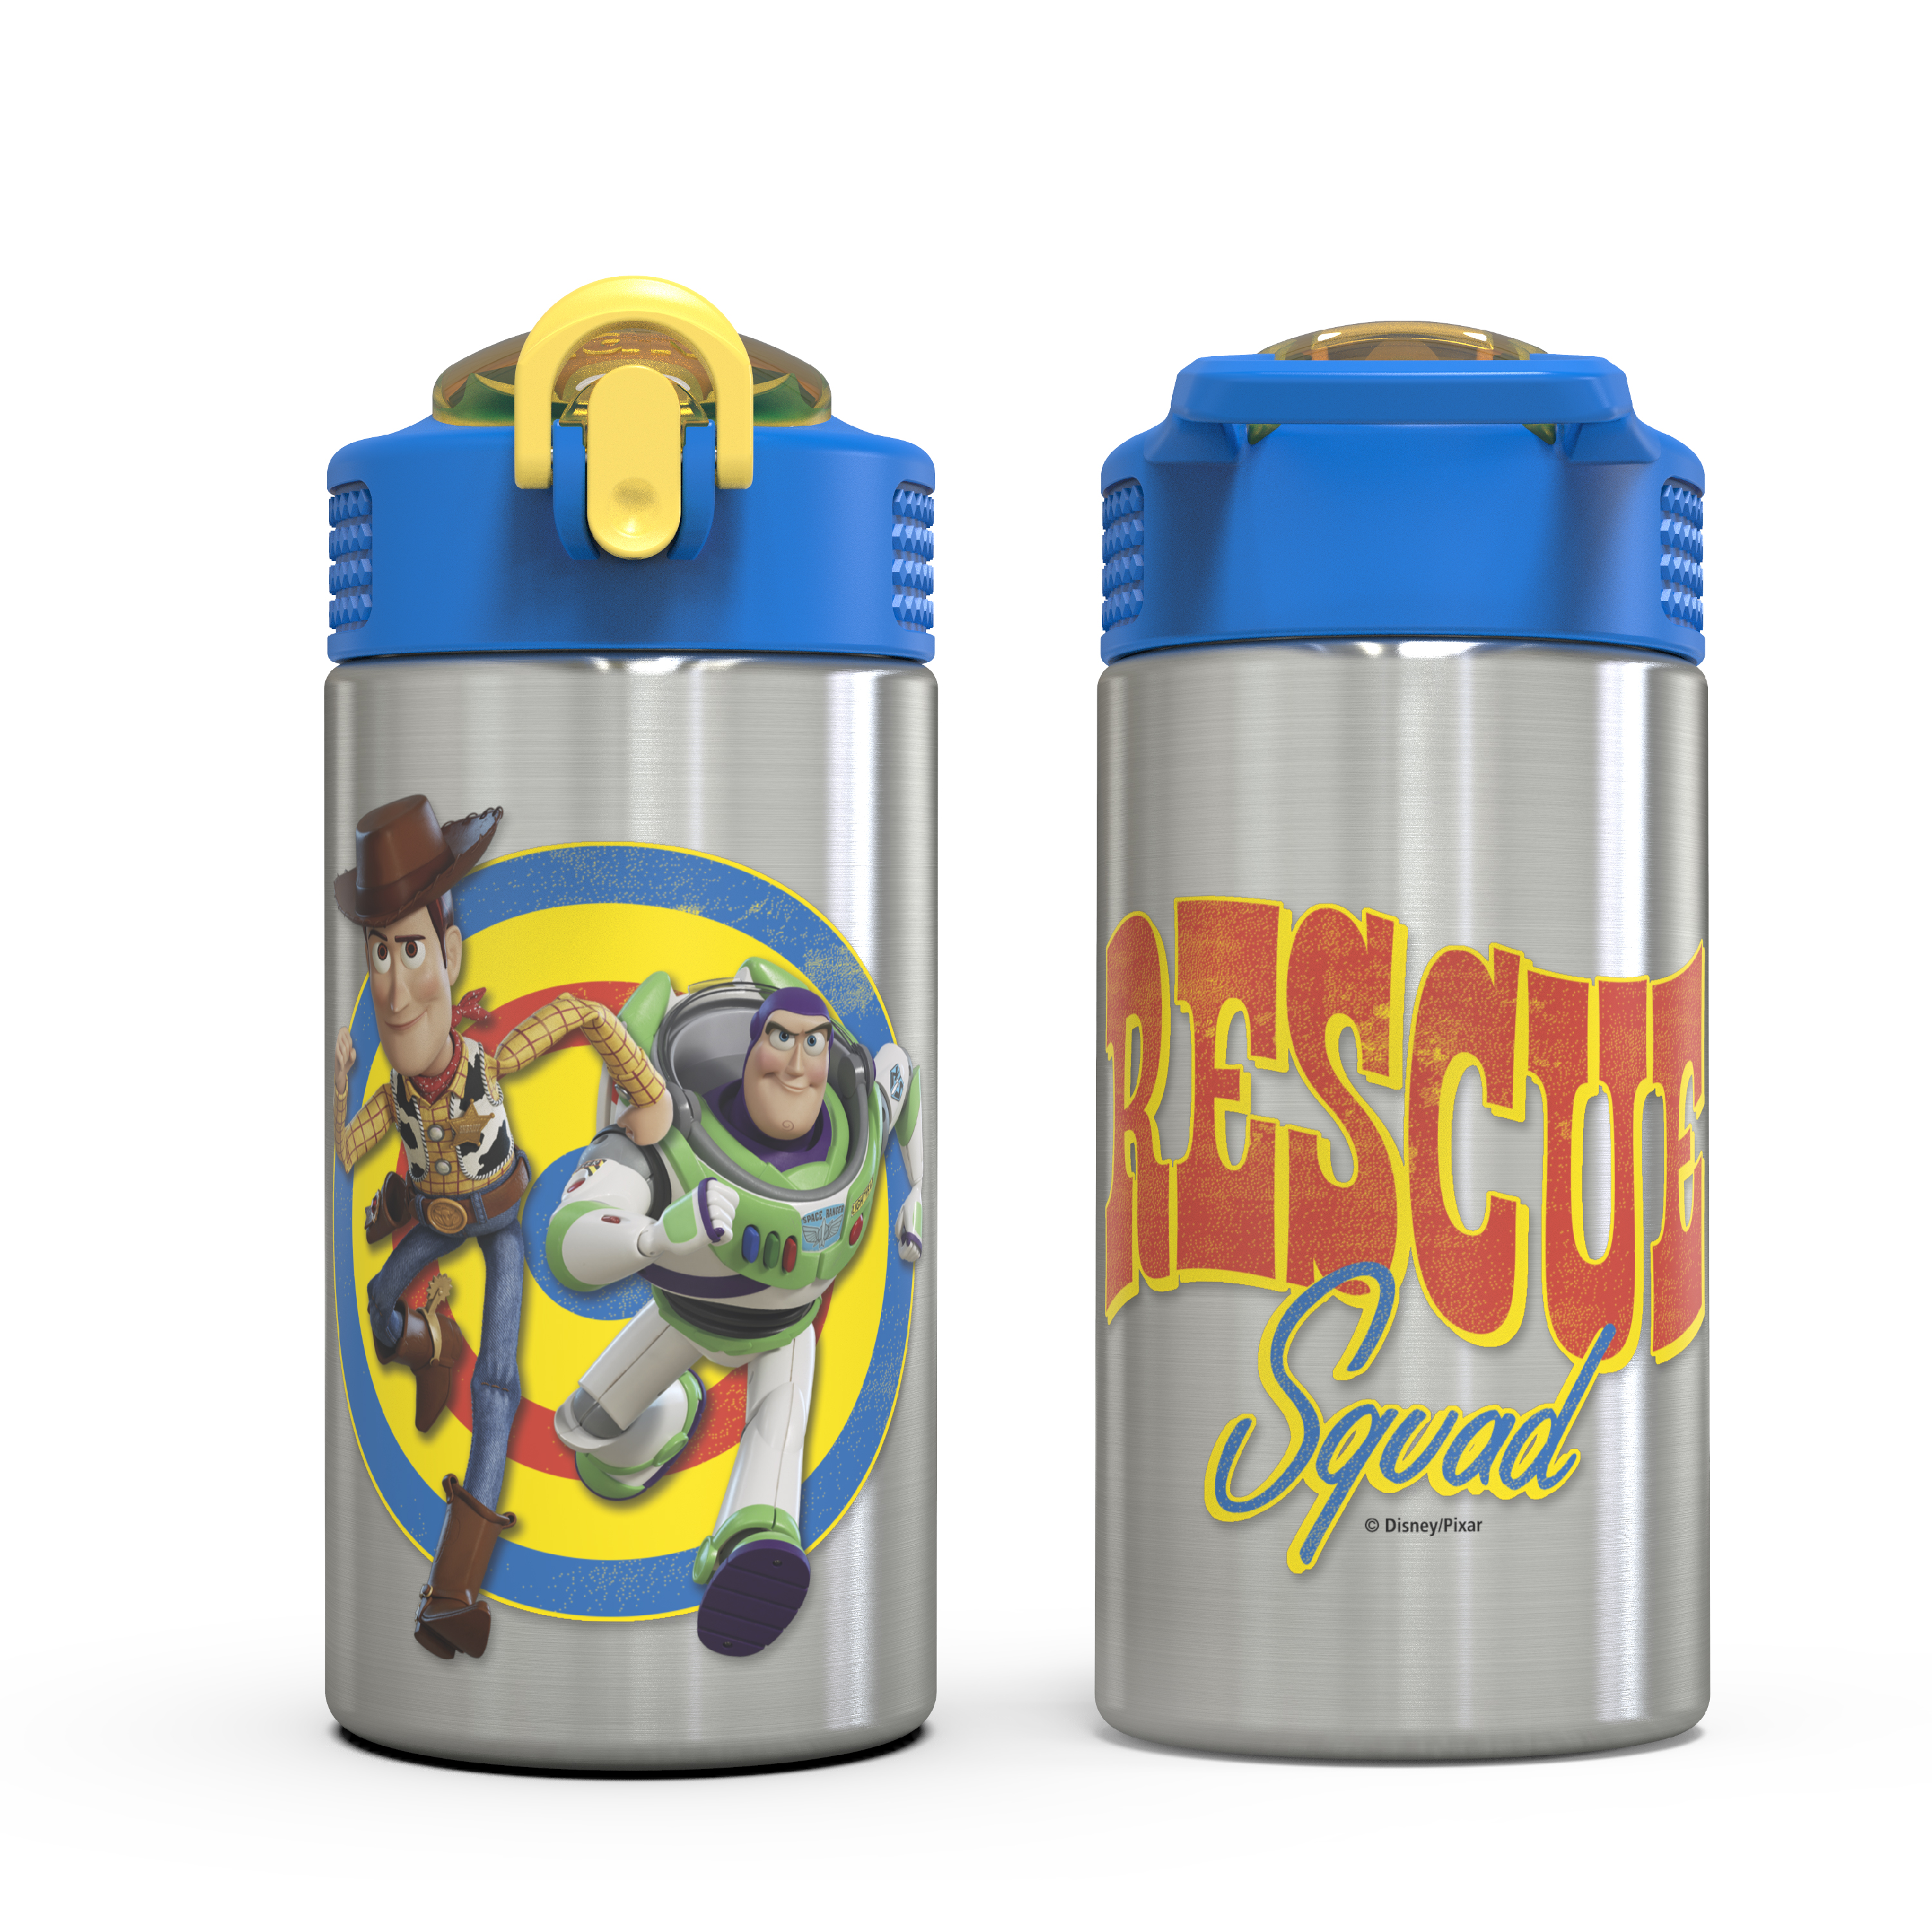 Toy Story 4 15.5 ounce Water Bottle, Buzz & Woody slideshow image 14